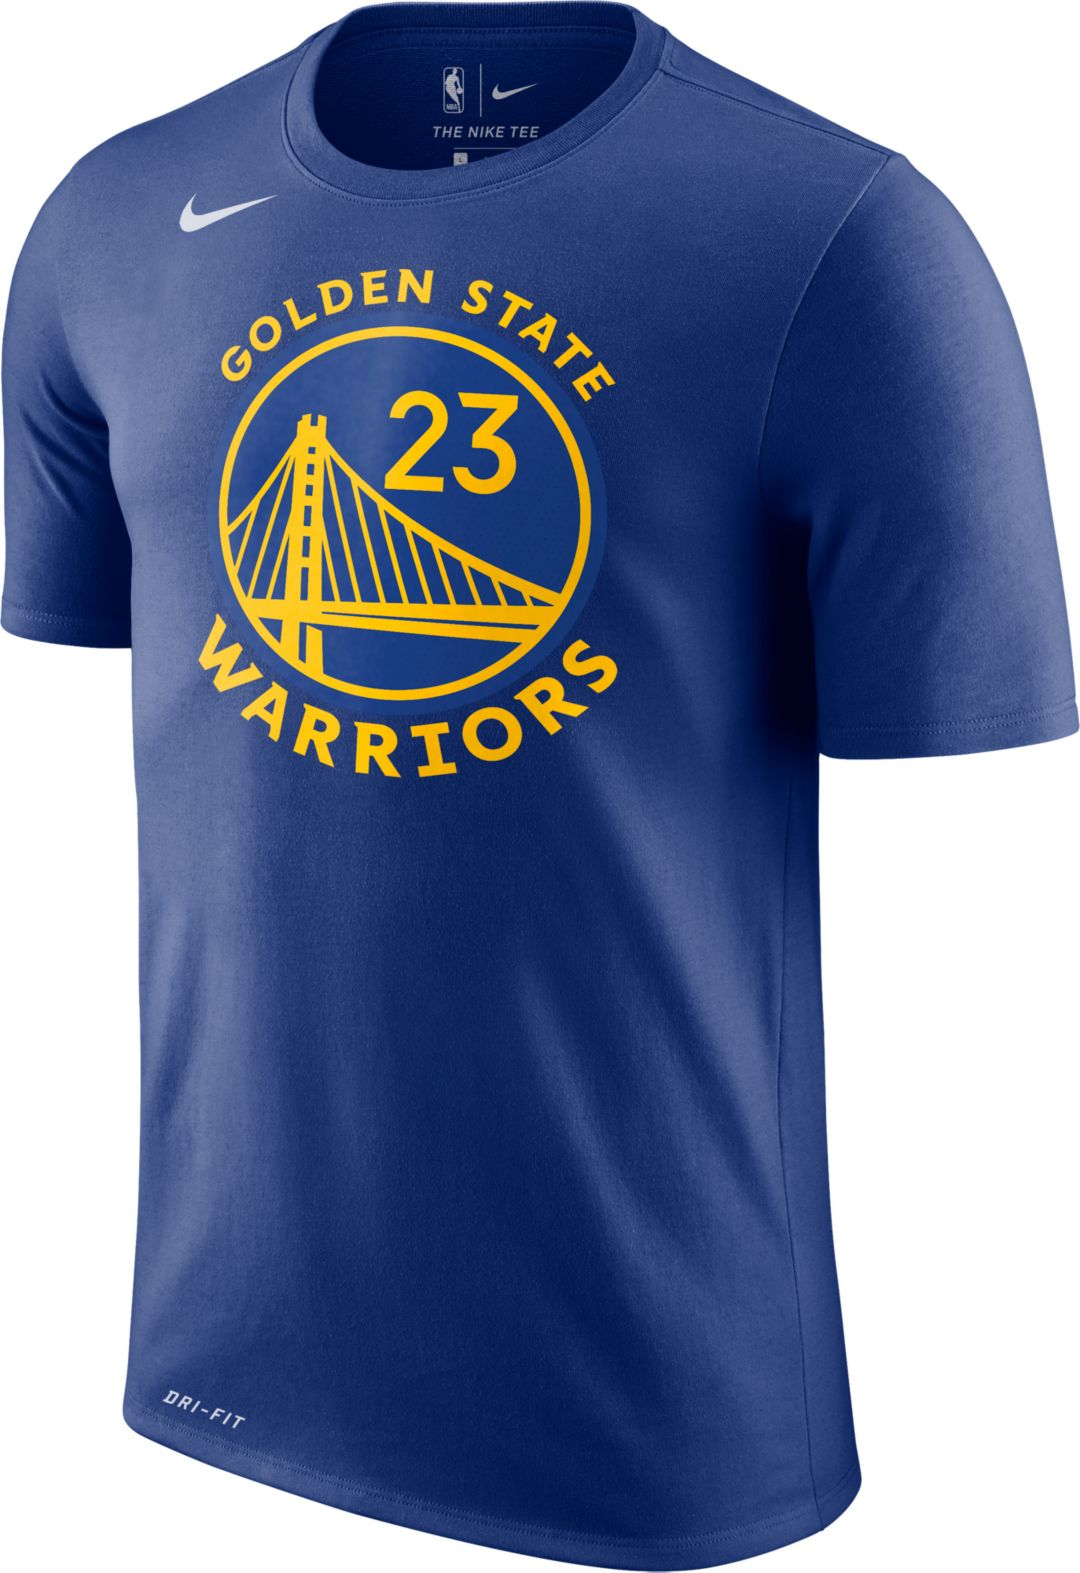 timeless design afef7 7724a Nike Youth Golden State Warriors Draymond Green #23 Dri-FIT Royal T-Shirt